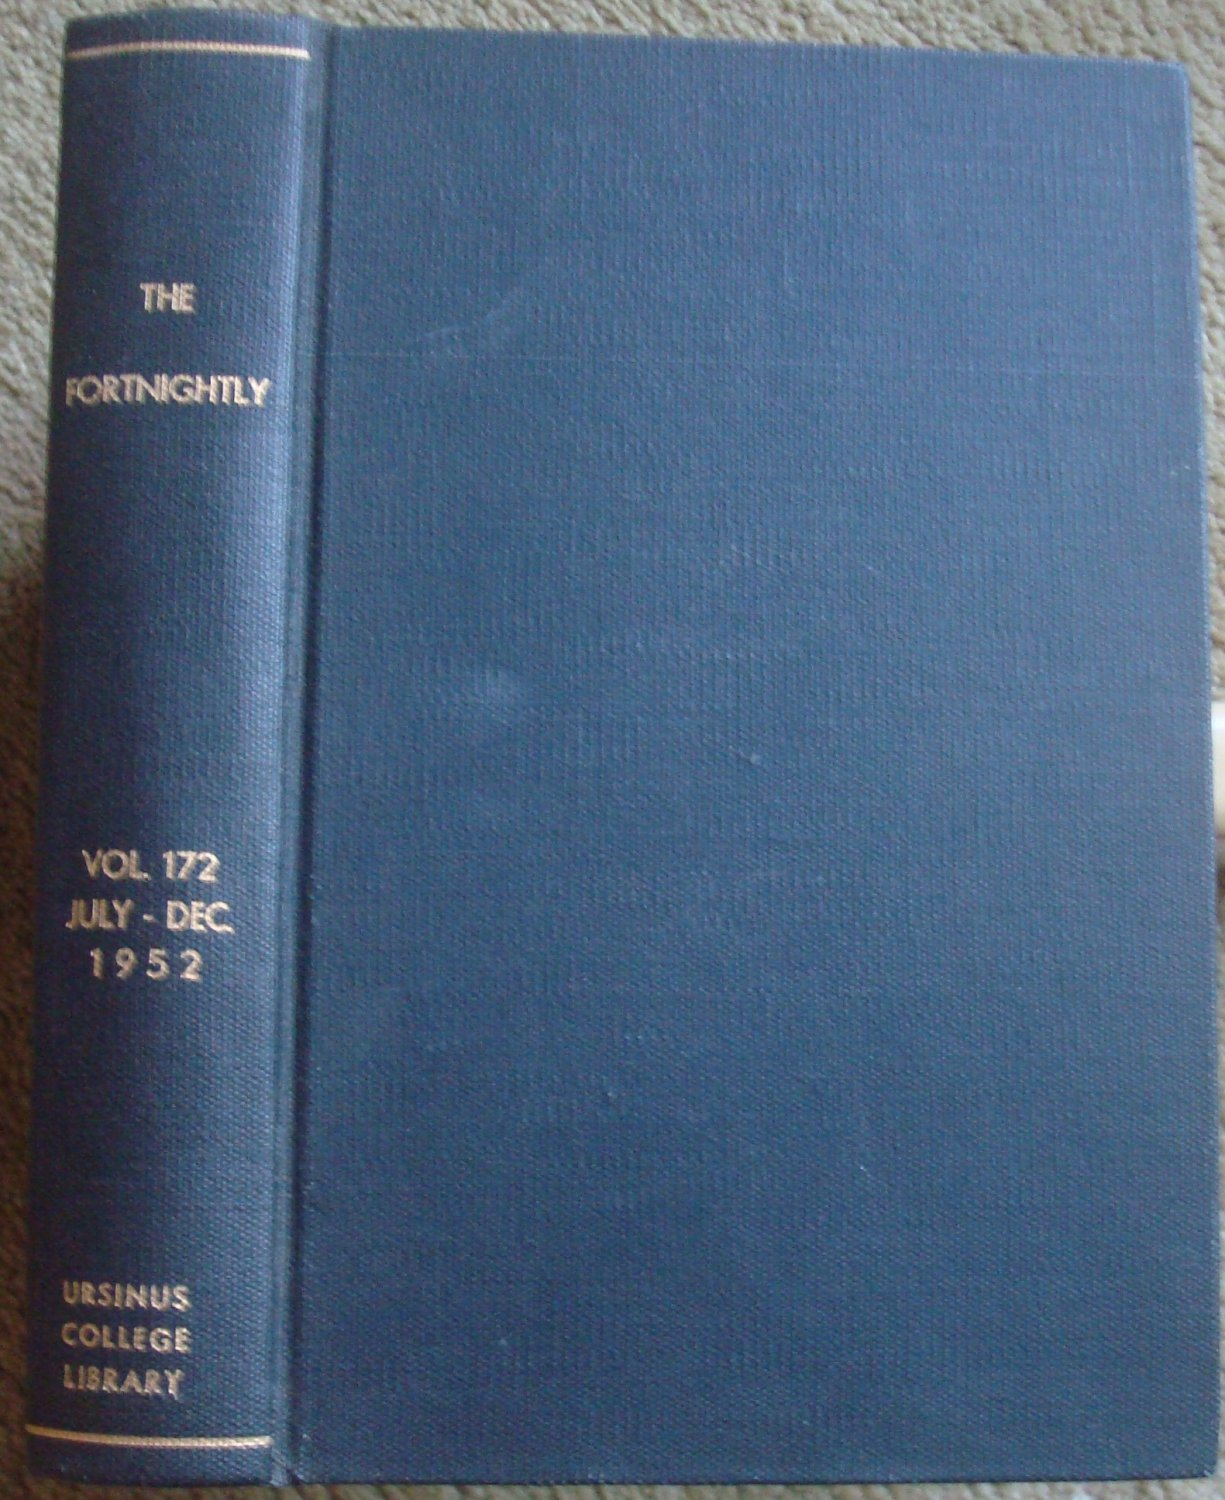 The Fortnightly July to December, 1952 Vol. CLXXII New Series